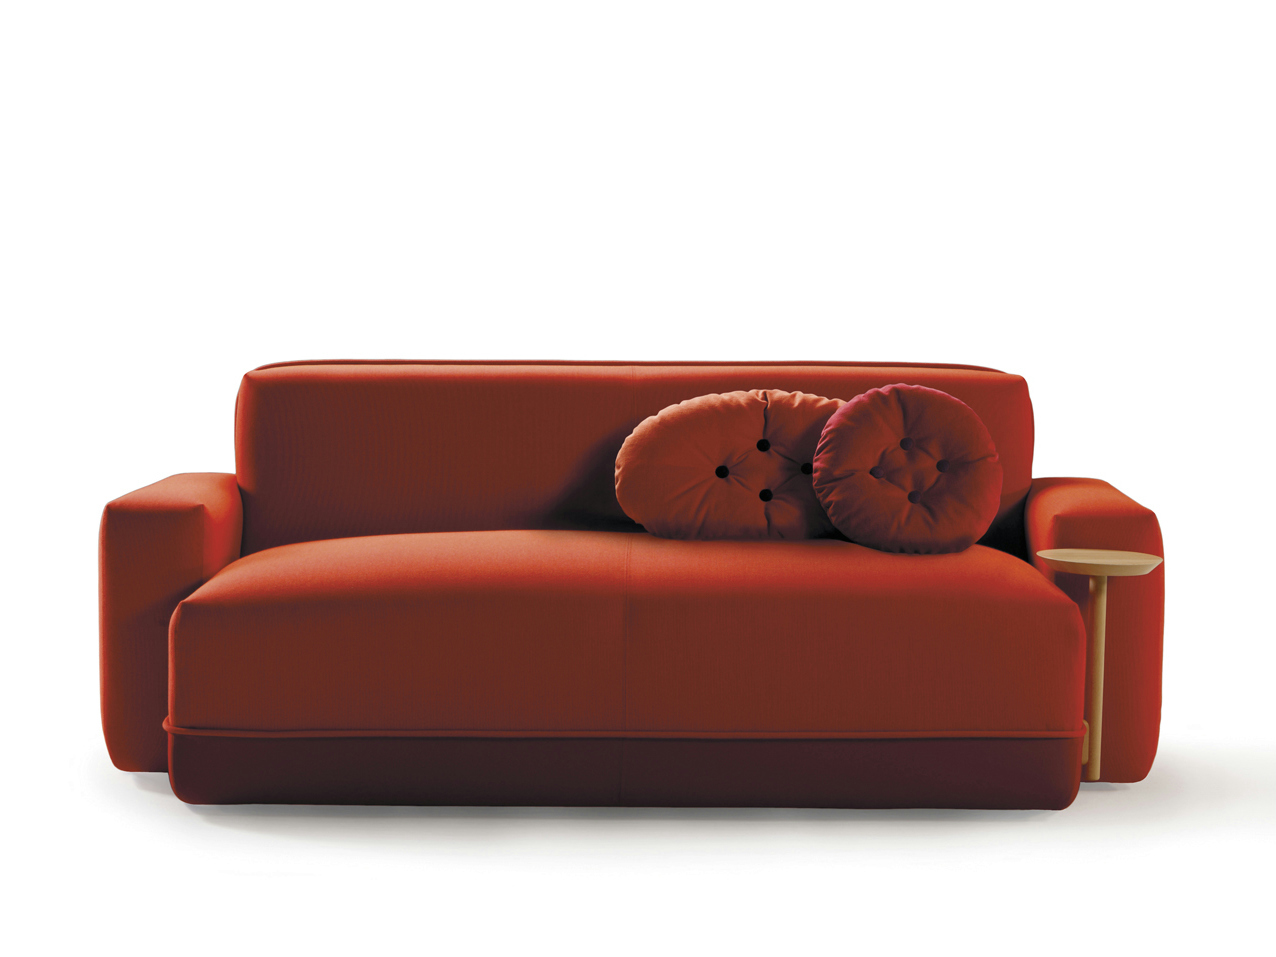 Party sofa by sancal dise o design luis eslava for Sofas diseno